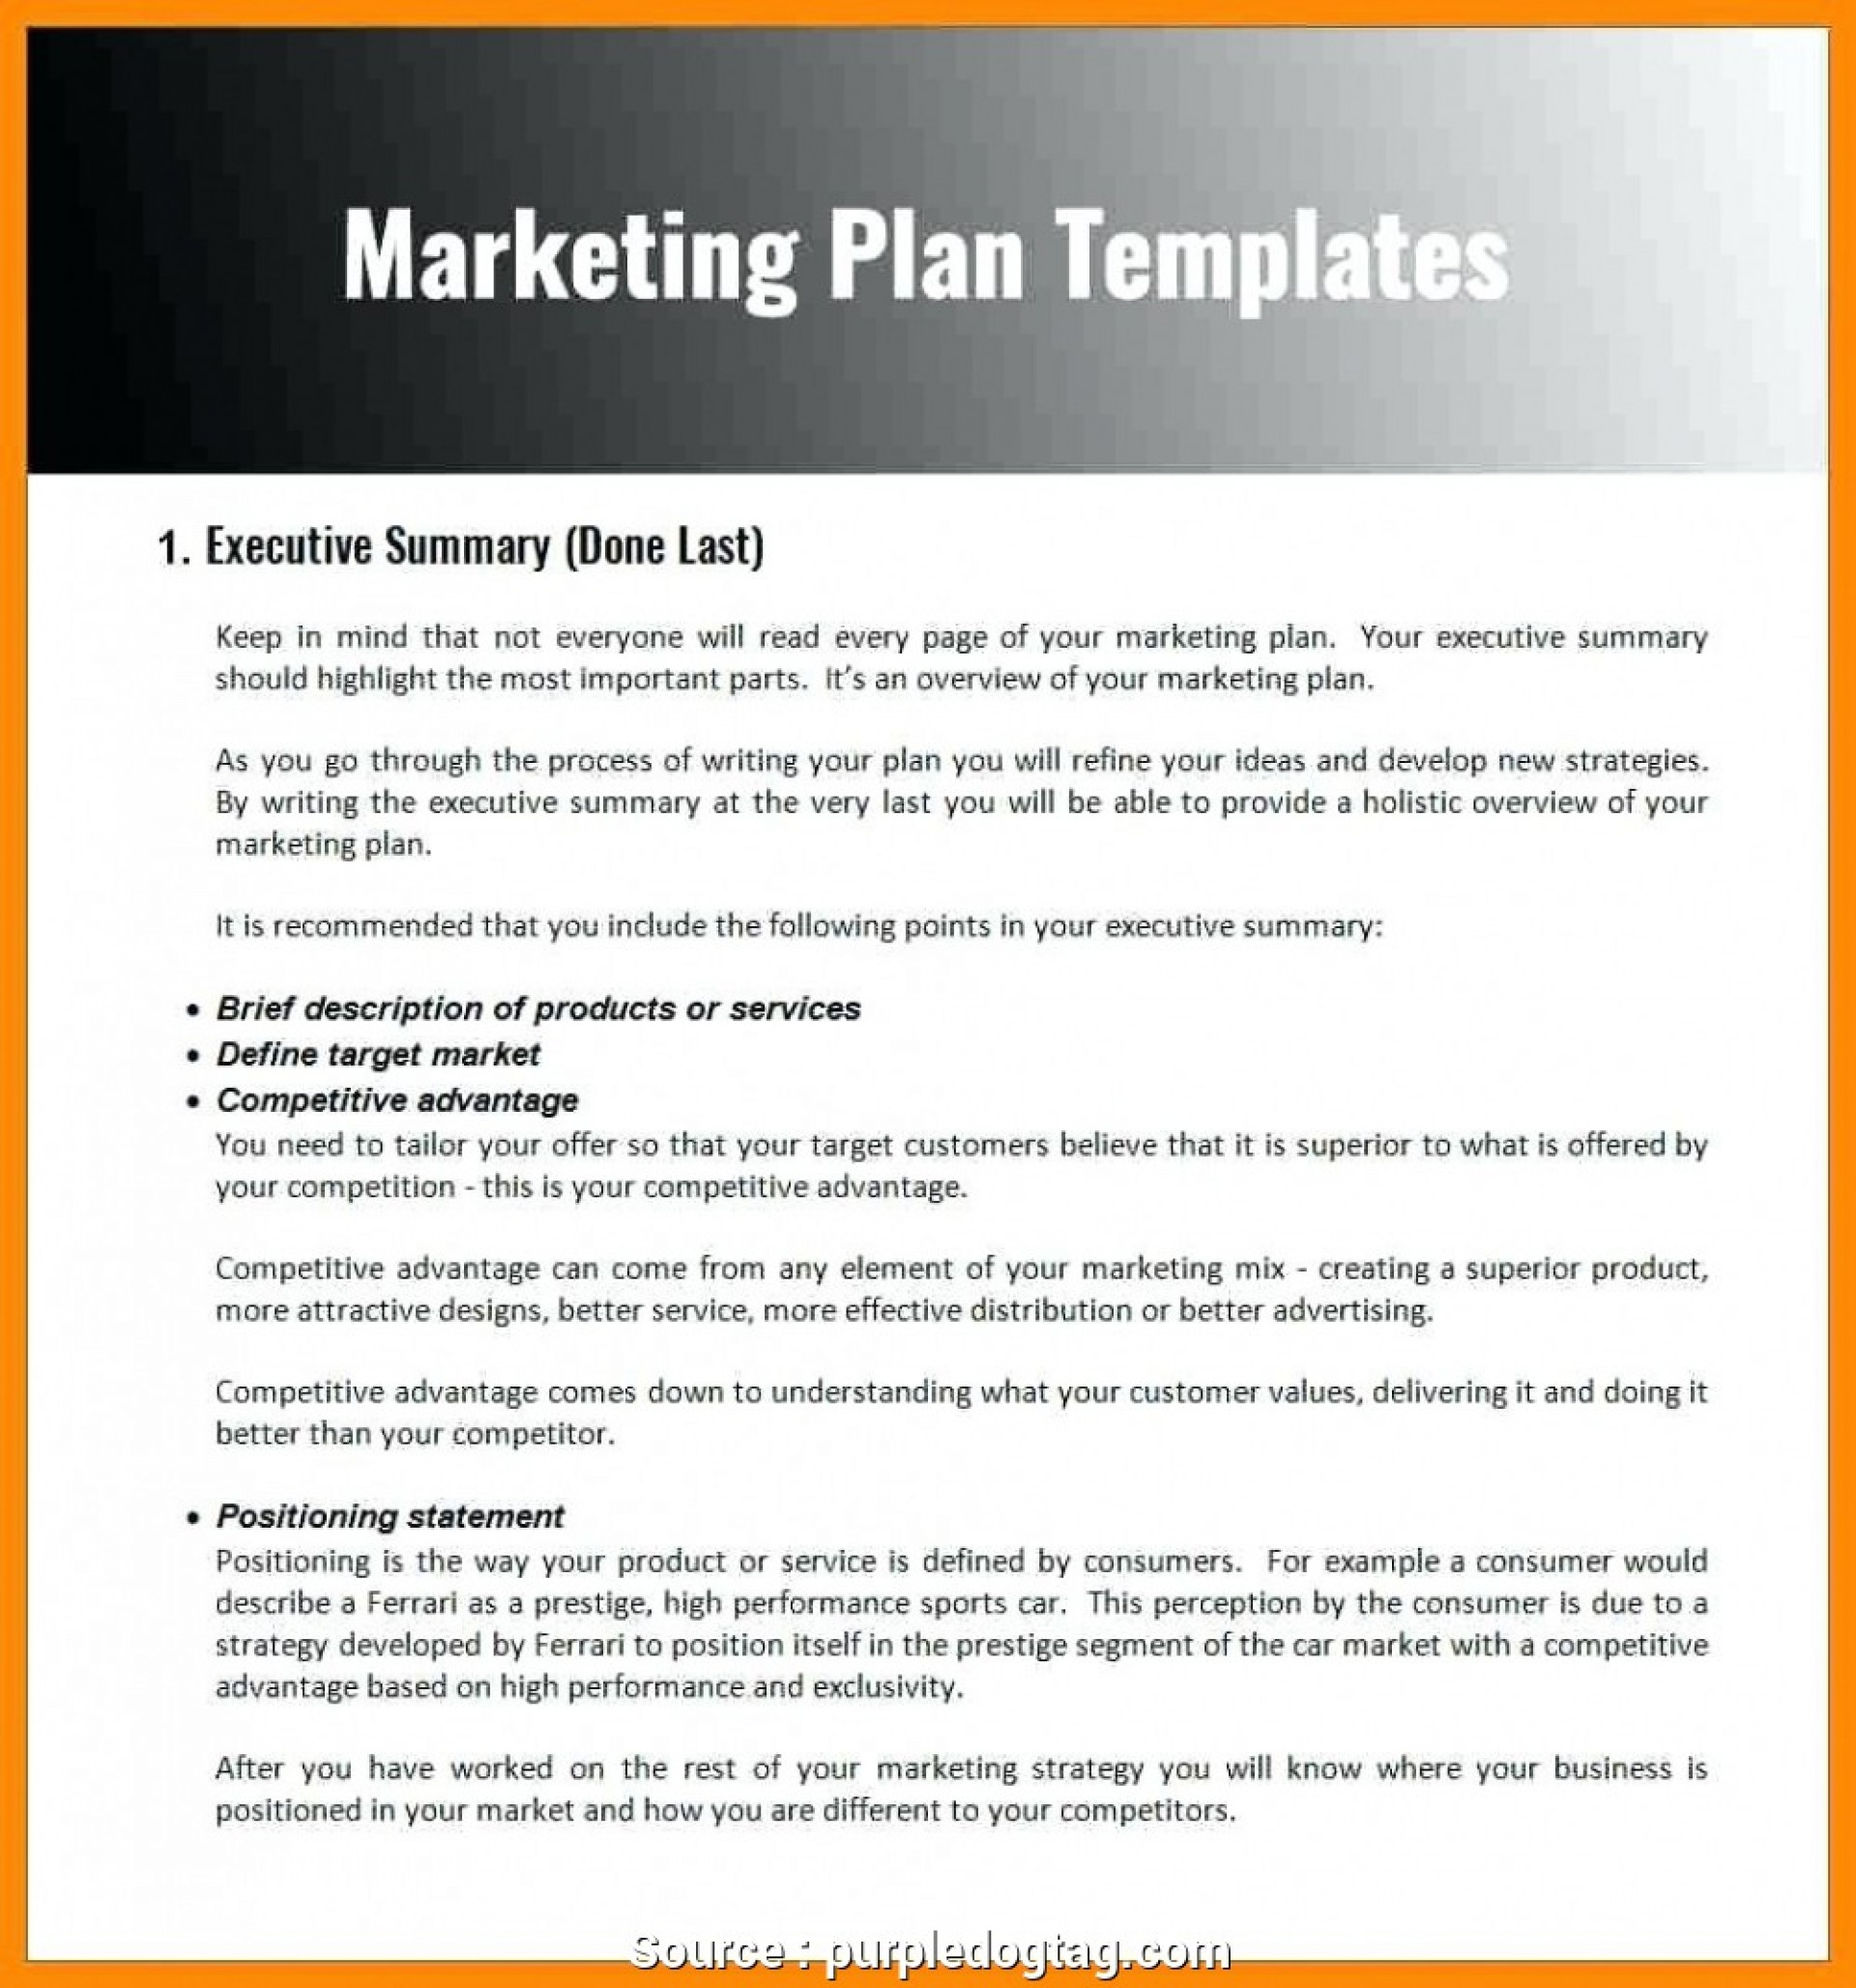 026 20market Plan20mplate Digital Marketing Pdf Study Music Presentation Ppt Product20 Format For Research Sensational Paper Free Templates Powerpoint 1920